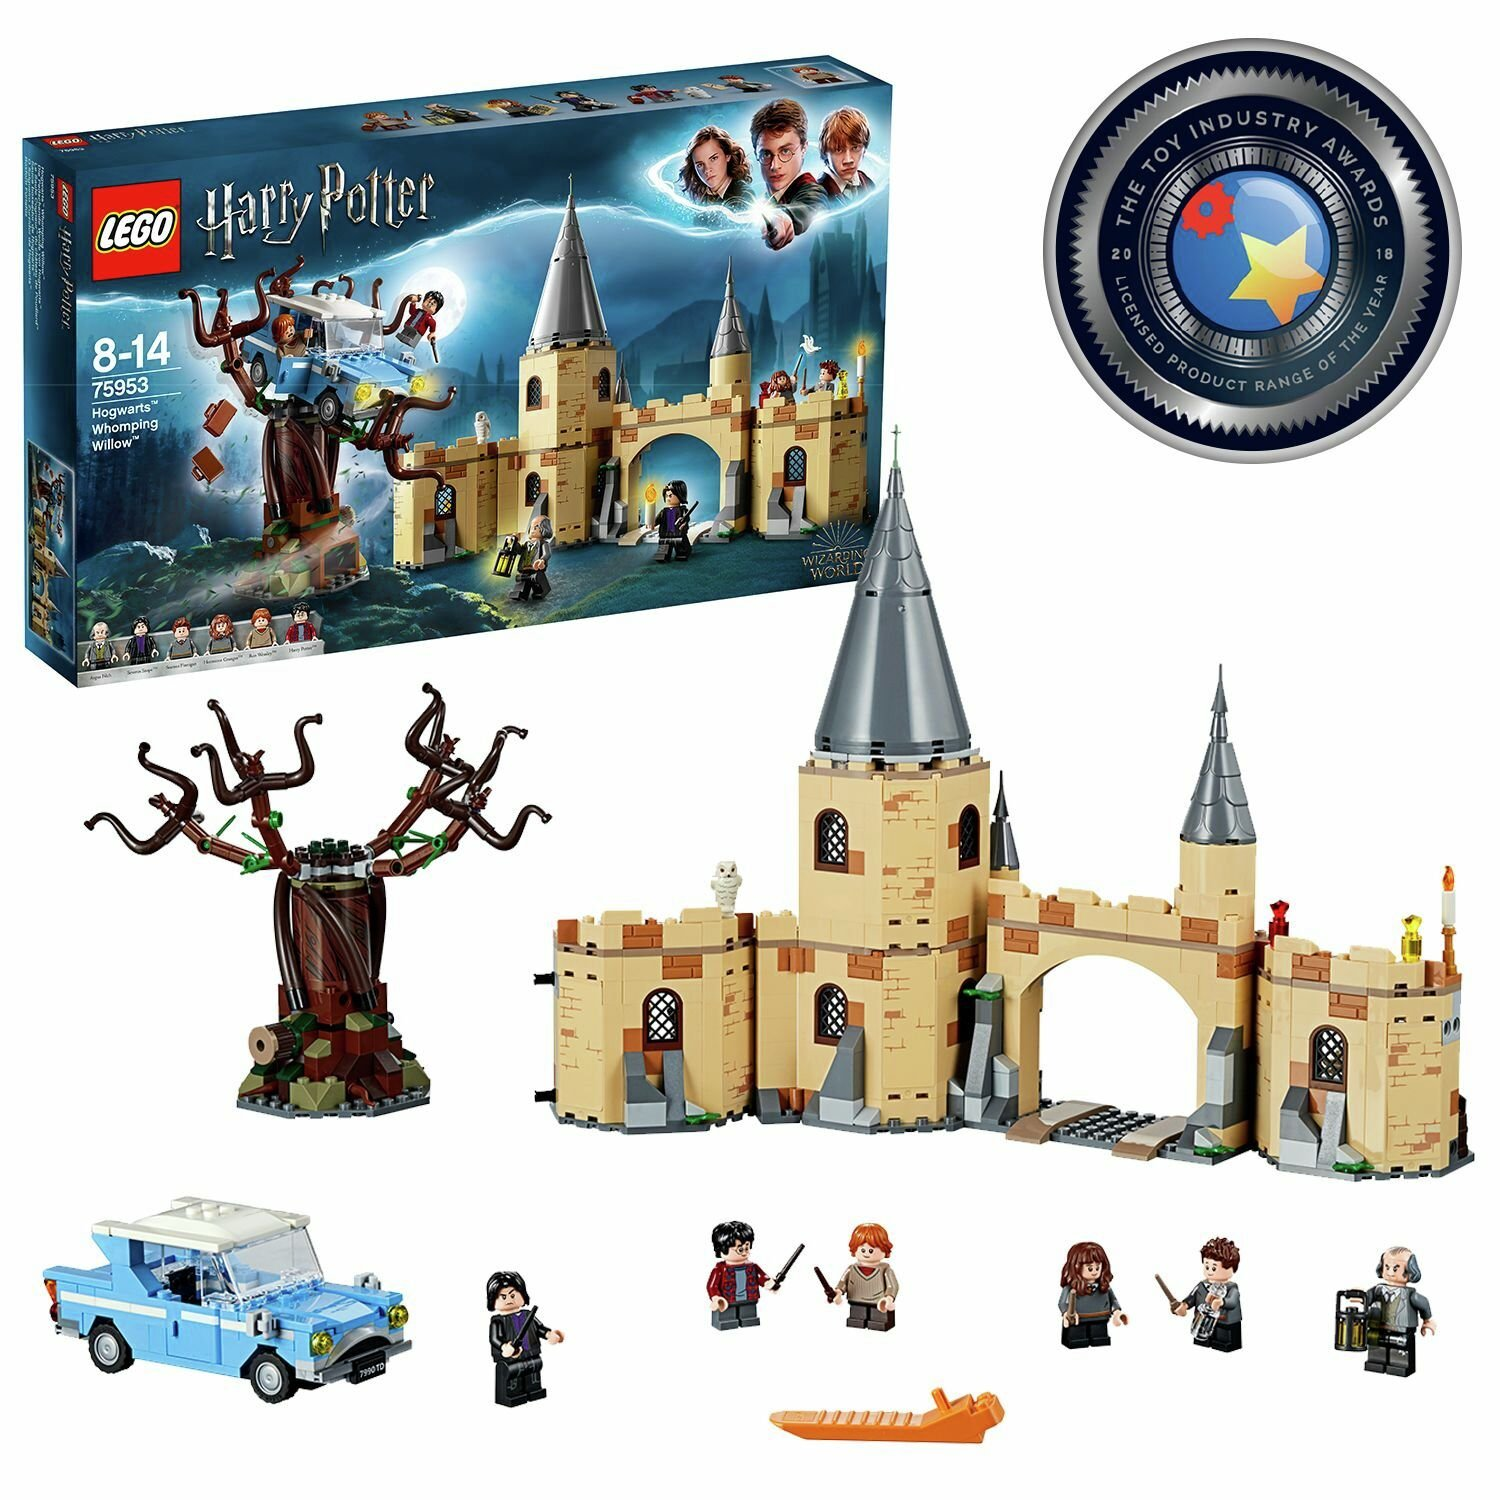 LEGO Harry Potter Hogwarts Whomping Willow Toy - 75953 from LEGO